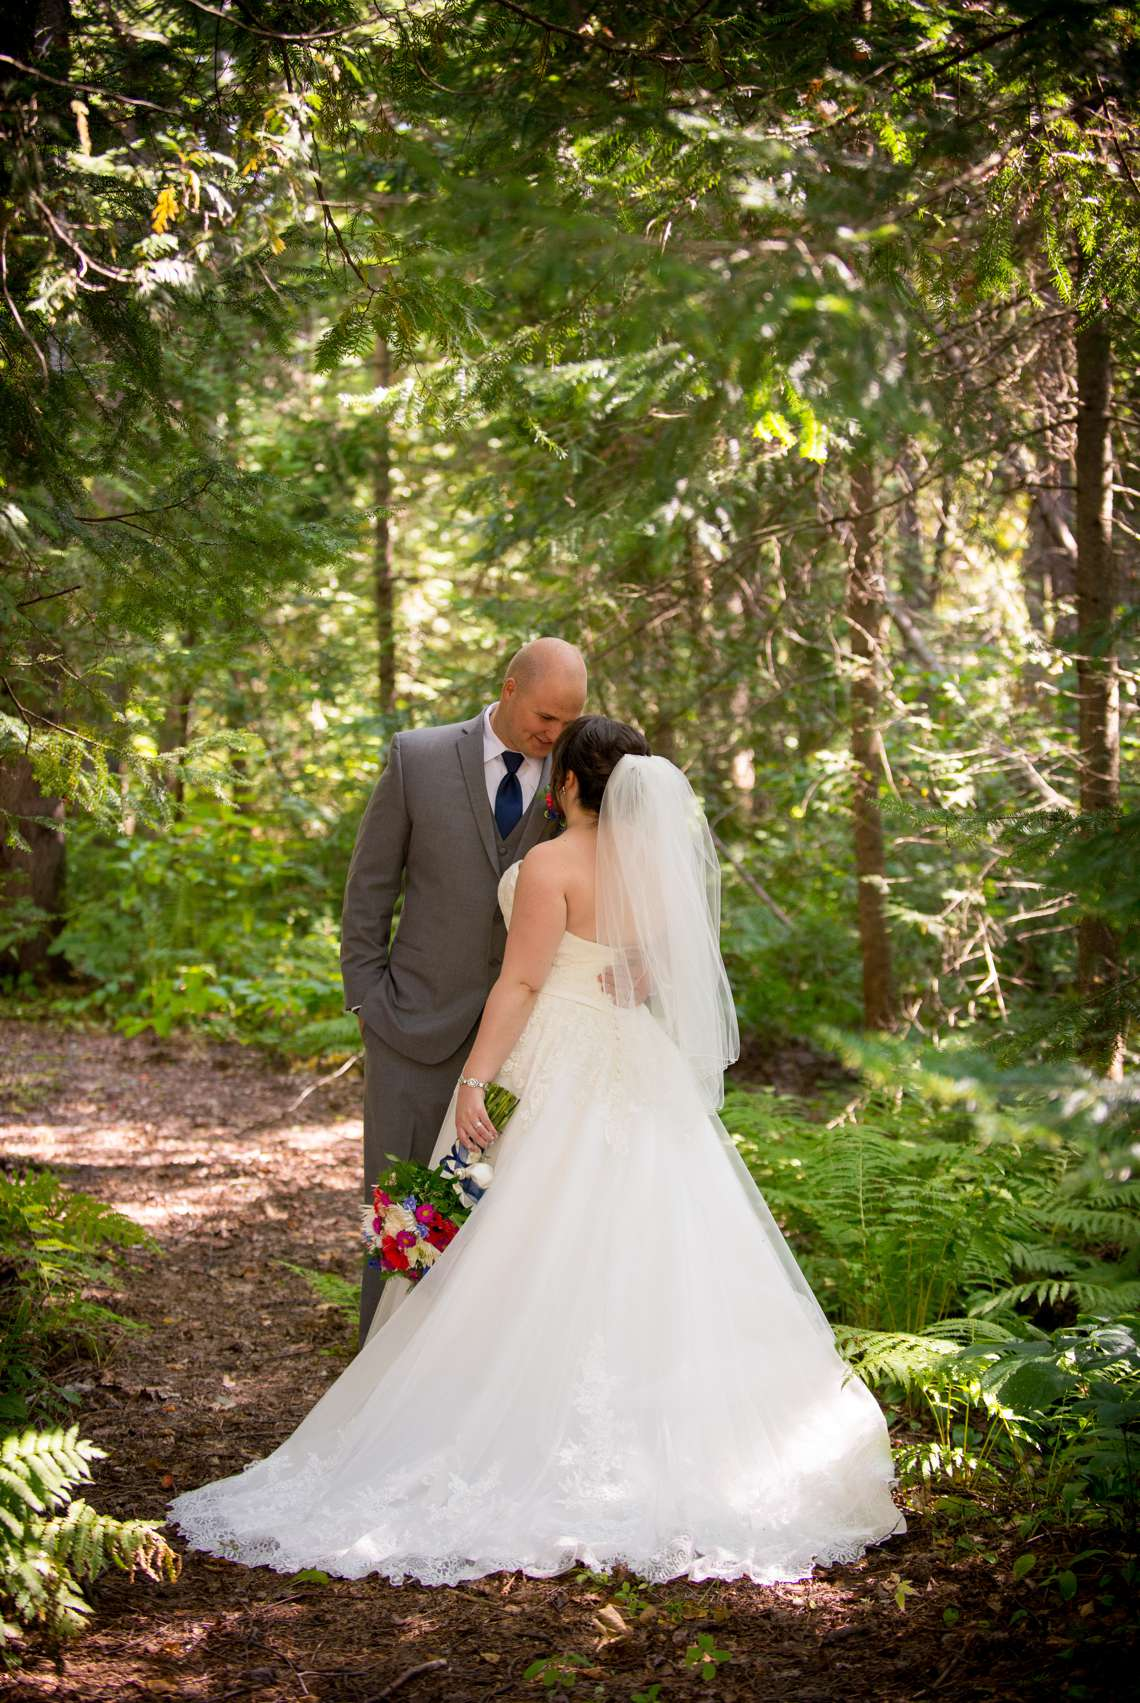 Bride and groom photos on a woods trail